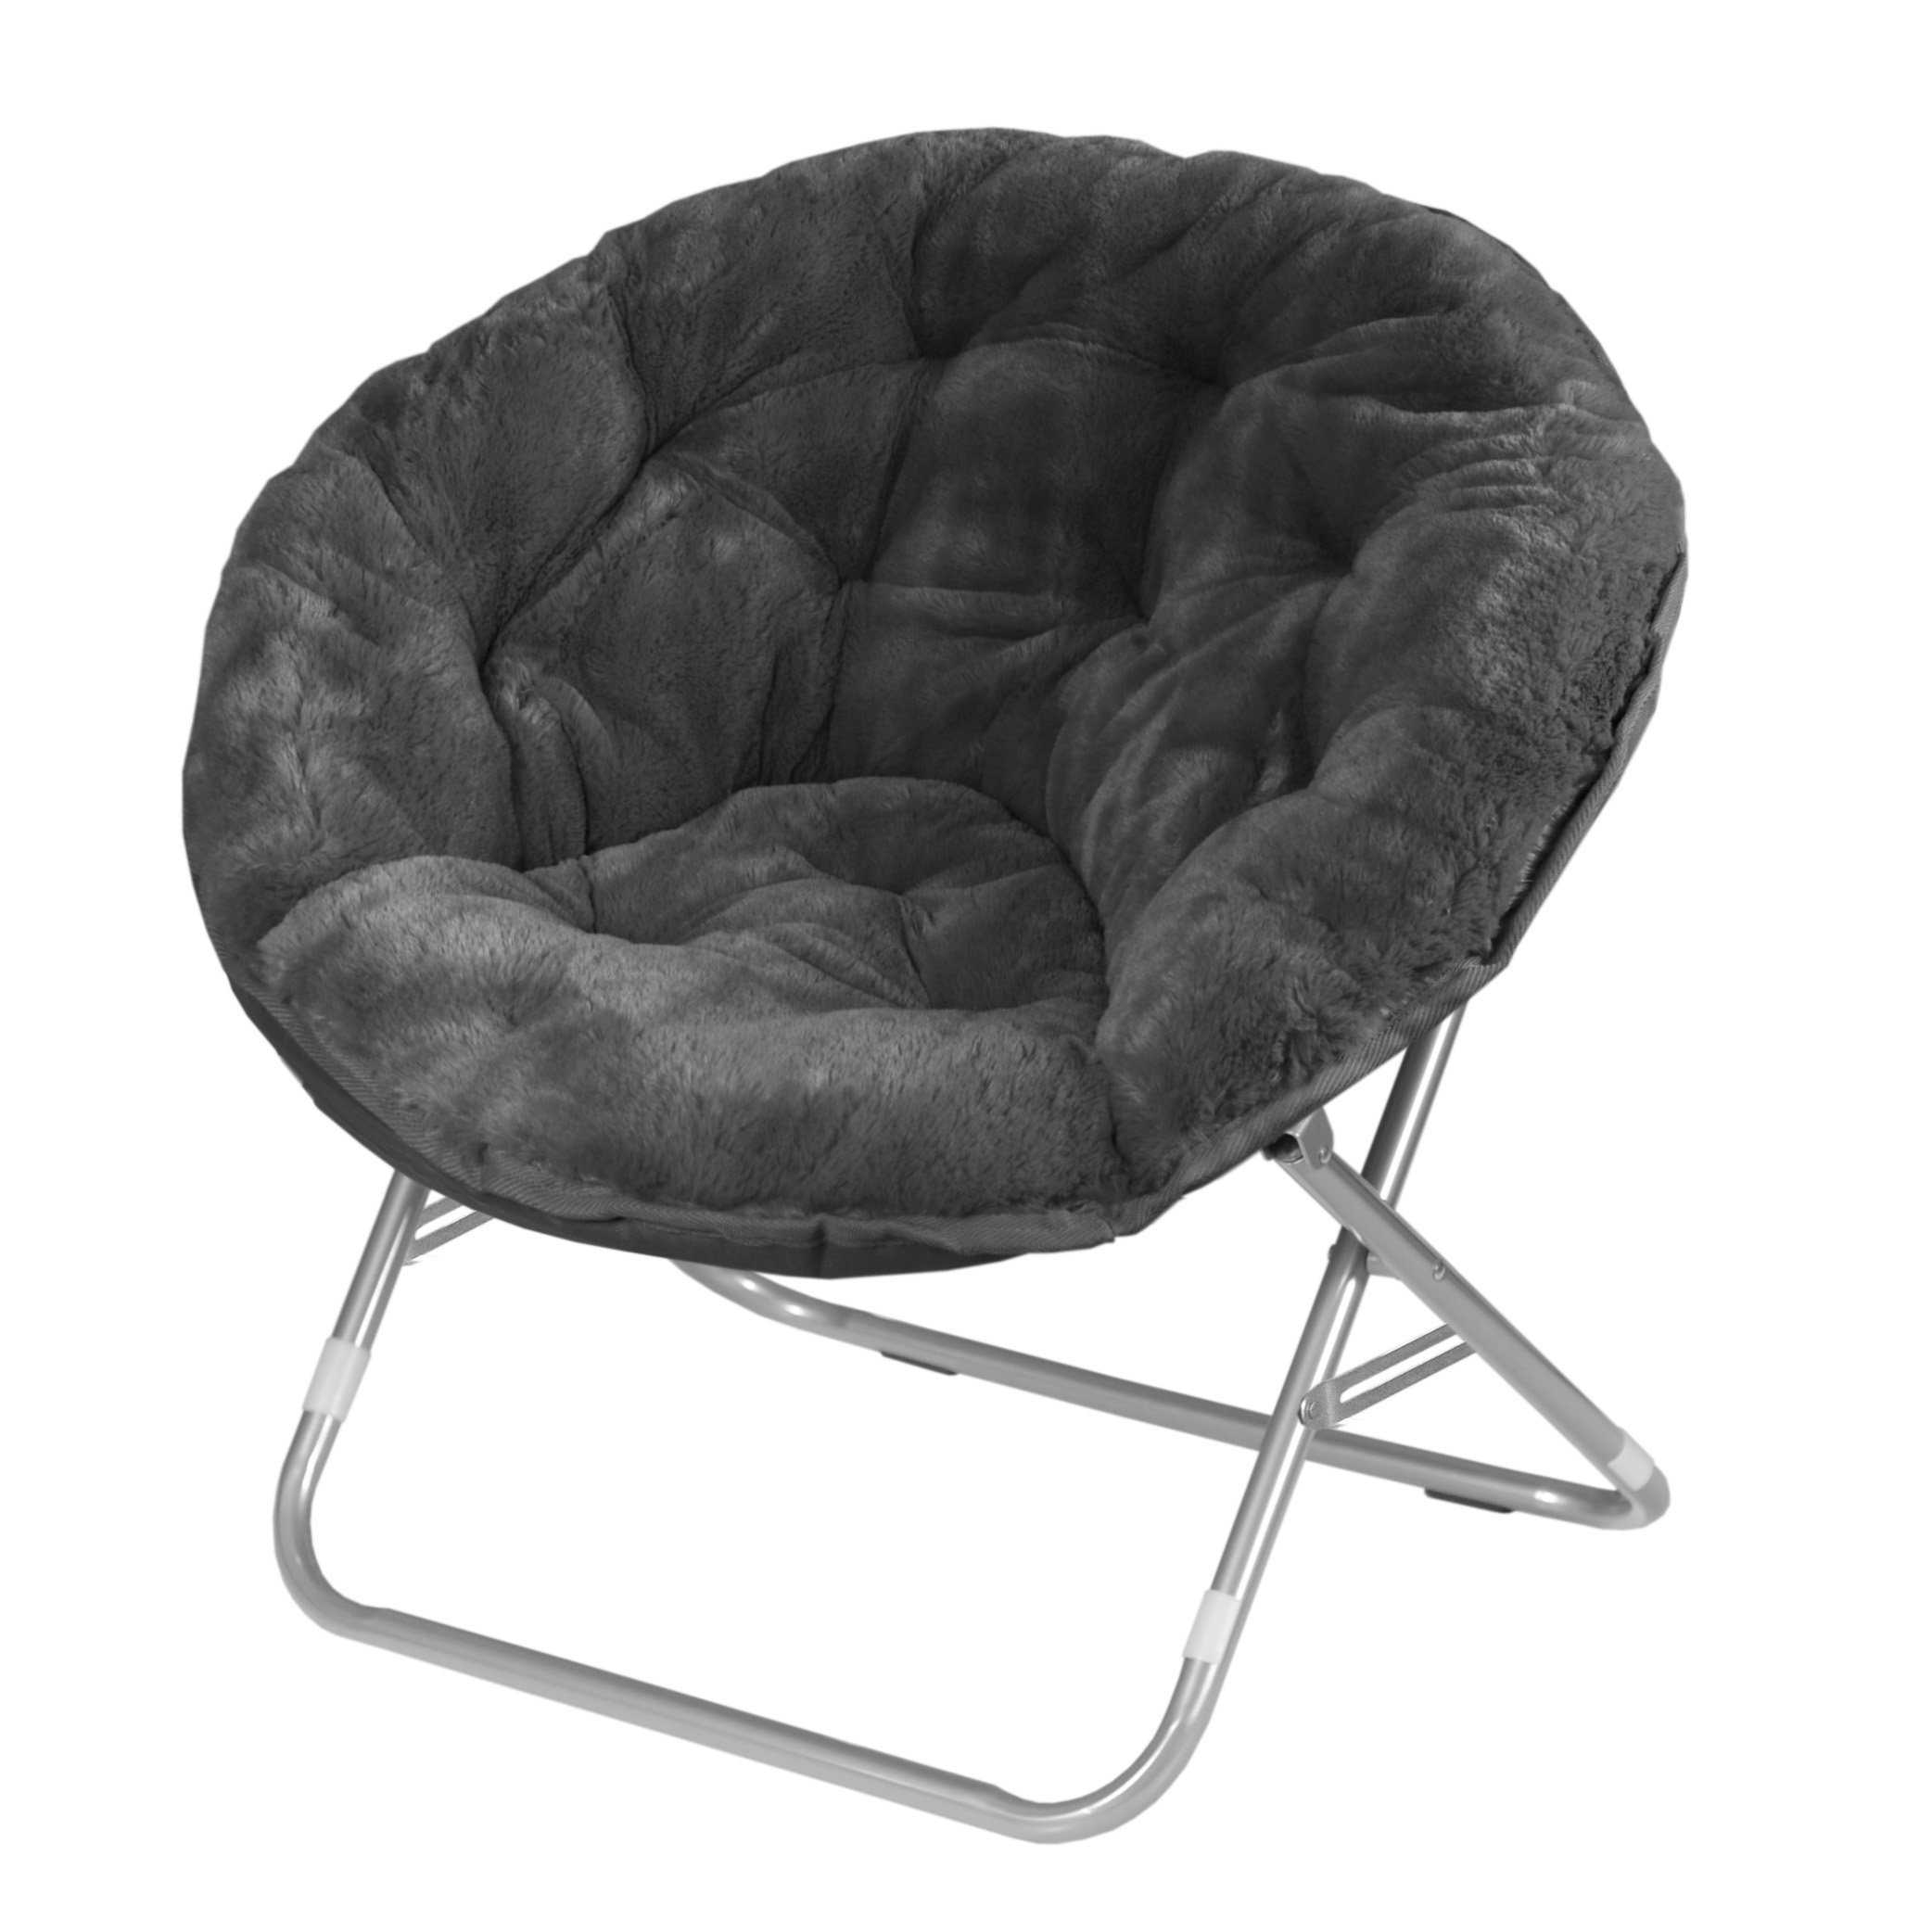 Papasan Chairs With Cushions Folding Black Urban Shop Faux Fur